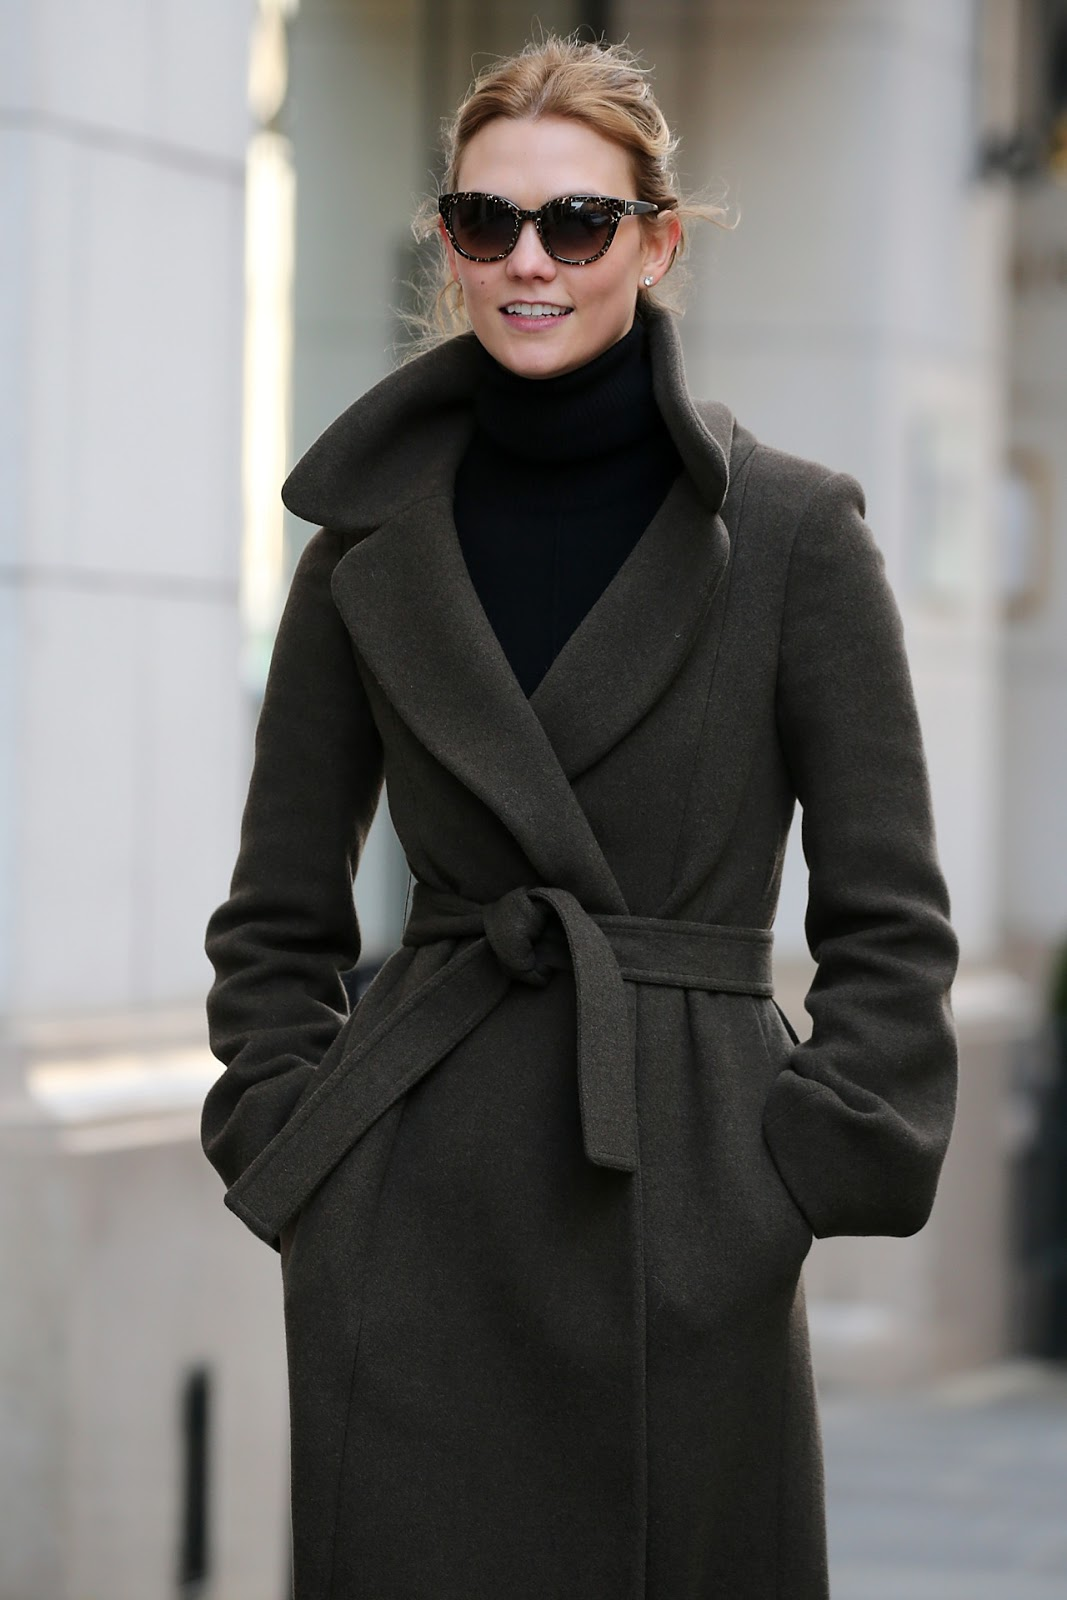 Karlie Kloss Wears a Wrap Out as She Enjoys Paris